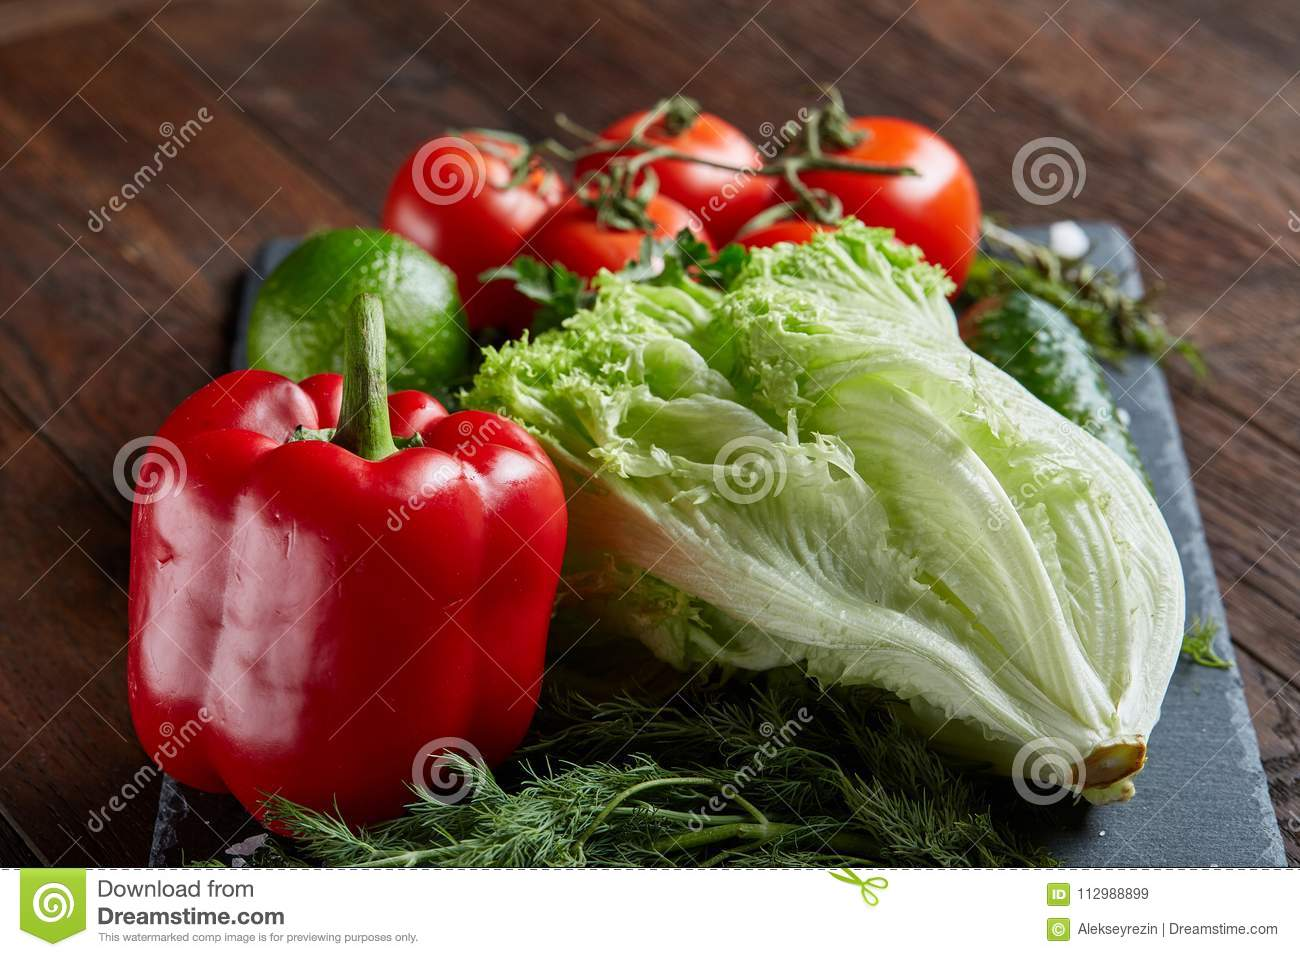 Close-up still life of assorted fresh vegetables and herbs on wooden rustic background, top view, selective focus.